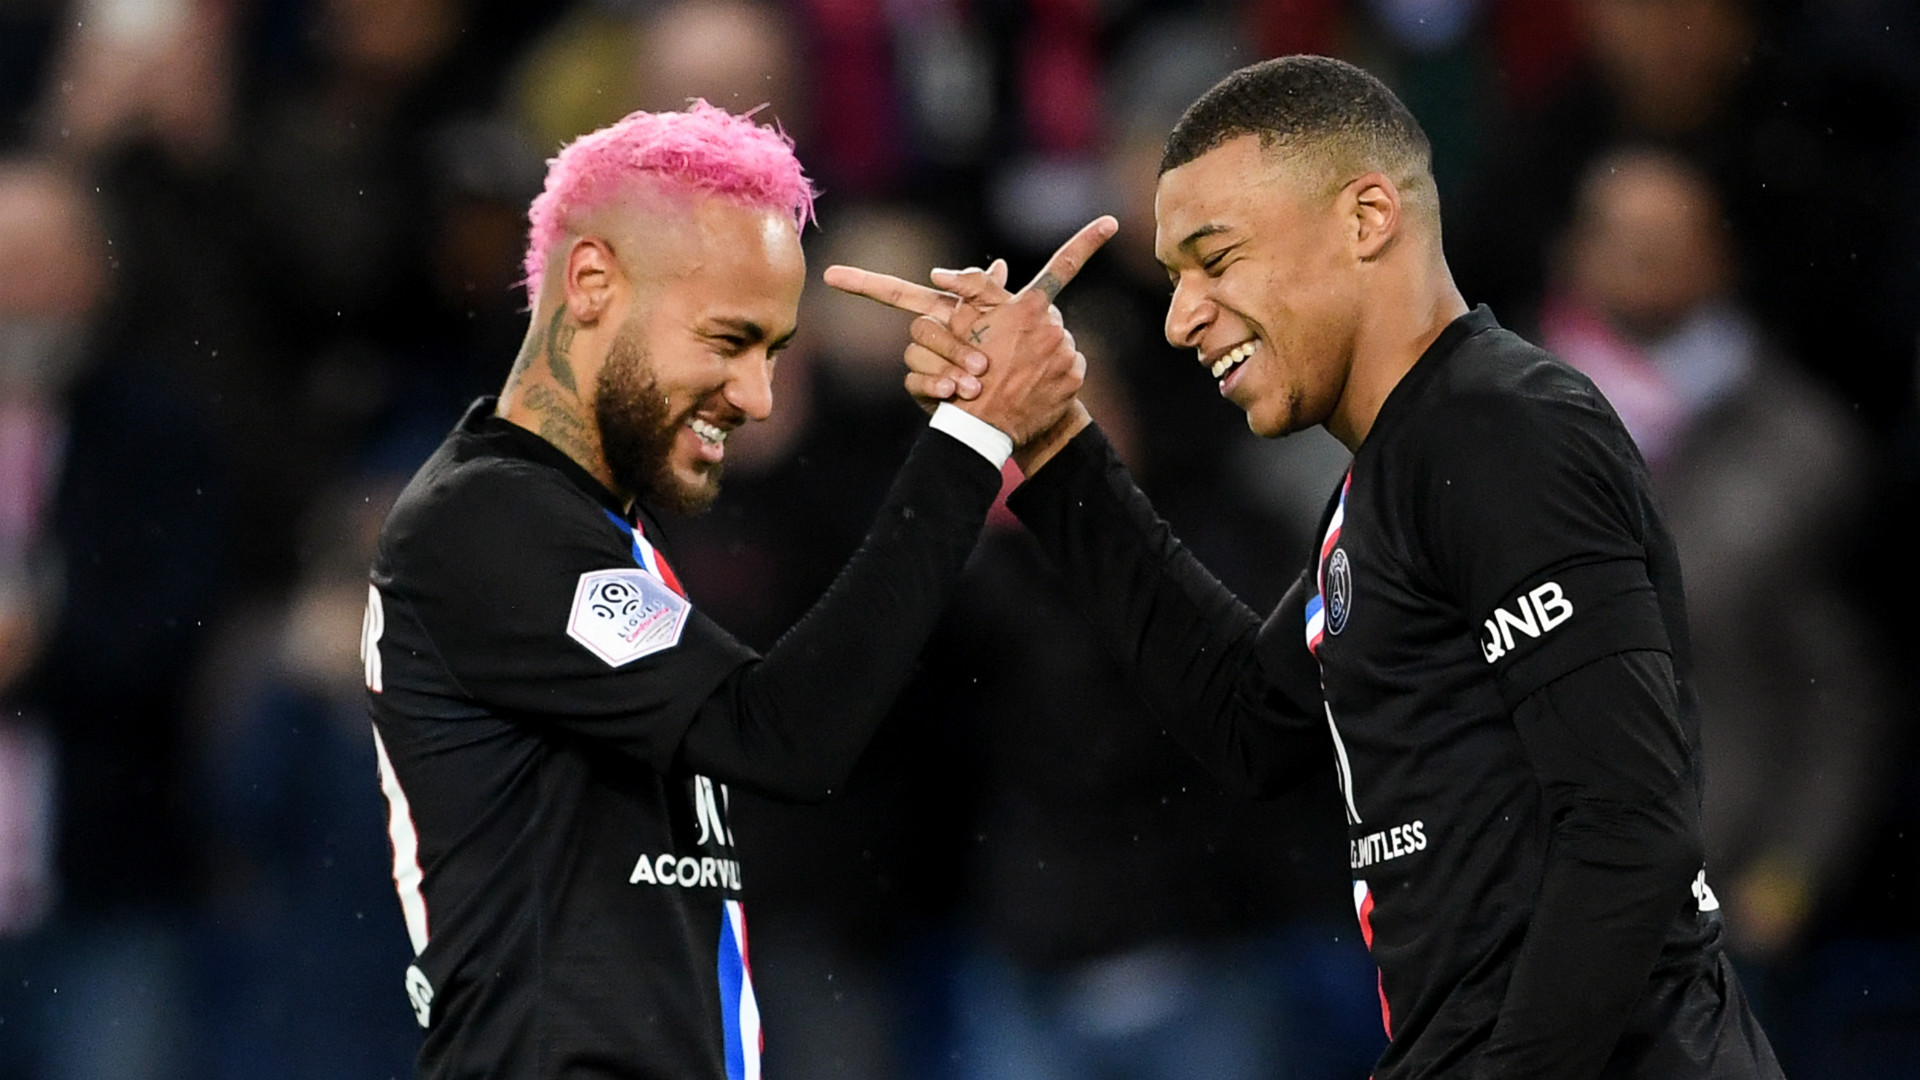 Neymar & Mbappe on the line for PSG in €400m match | Goal.com